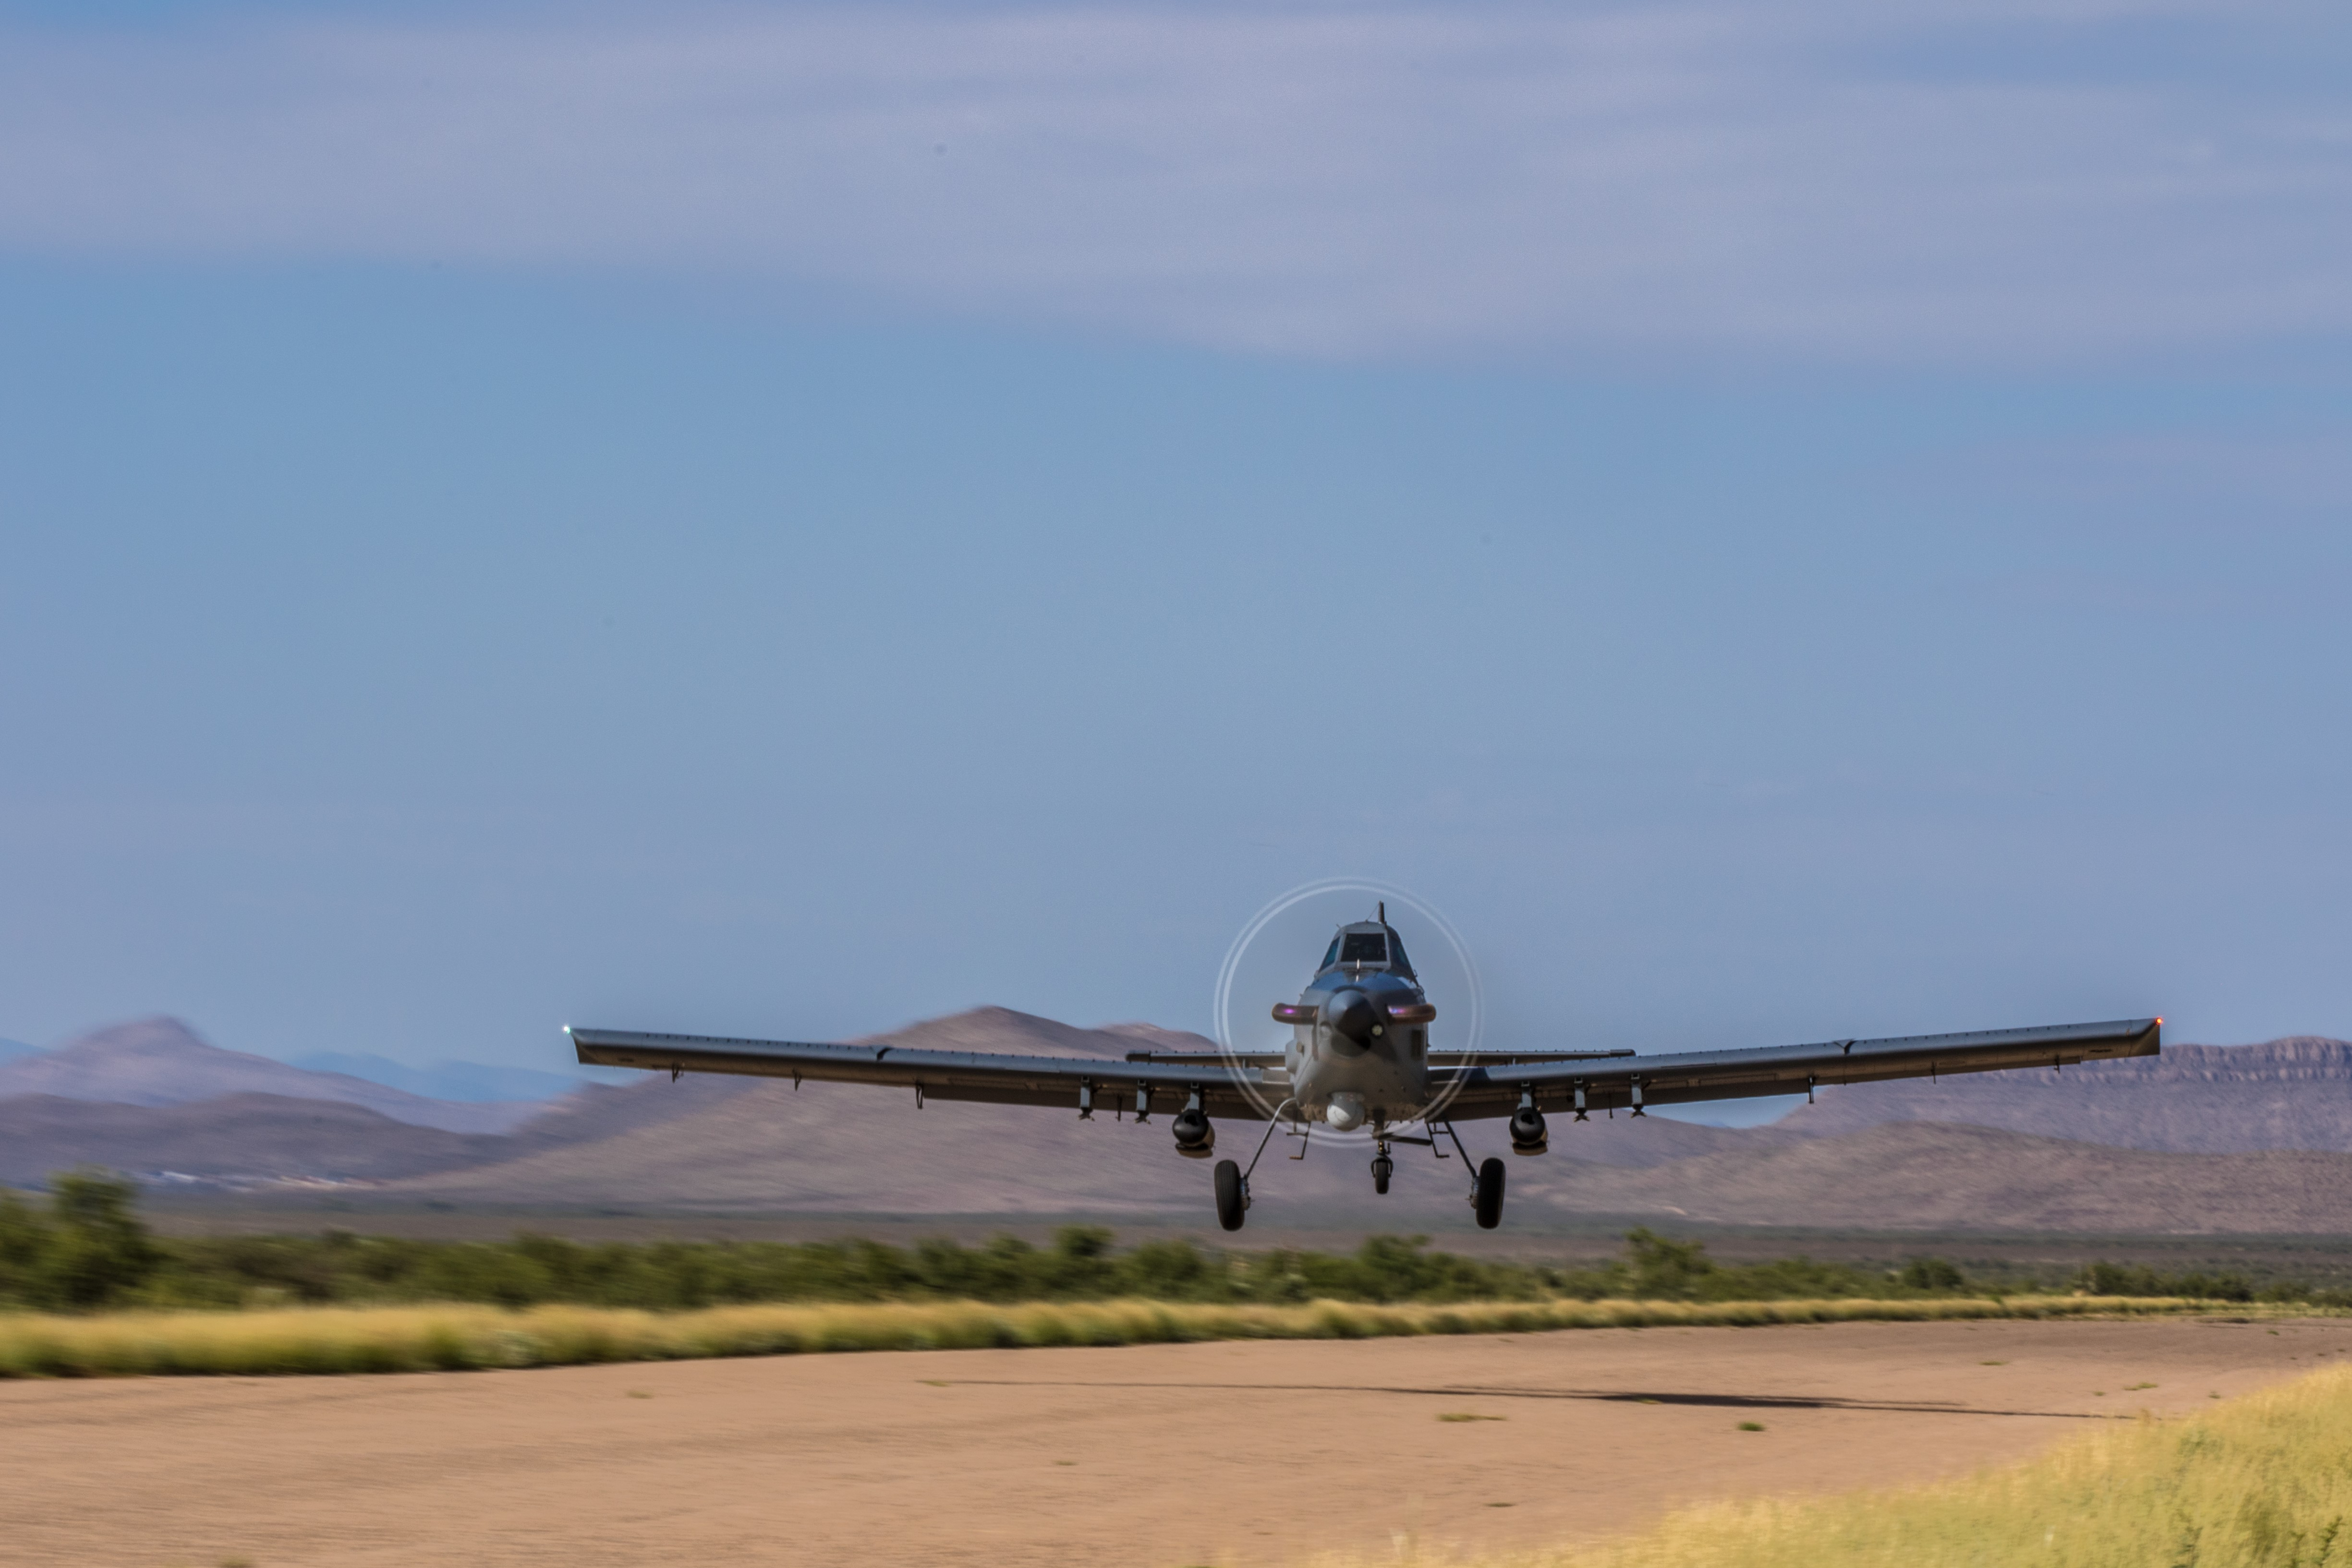 Air Tractor and L3 join OA-X experiment with the AT-802L Longsword